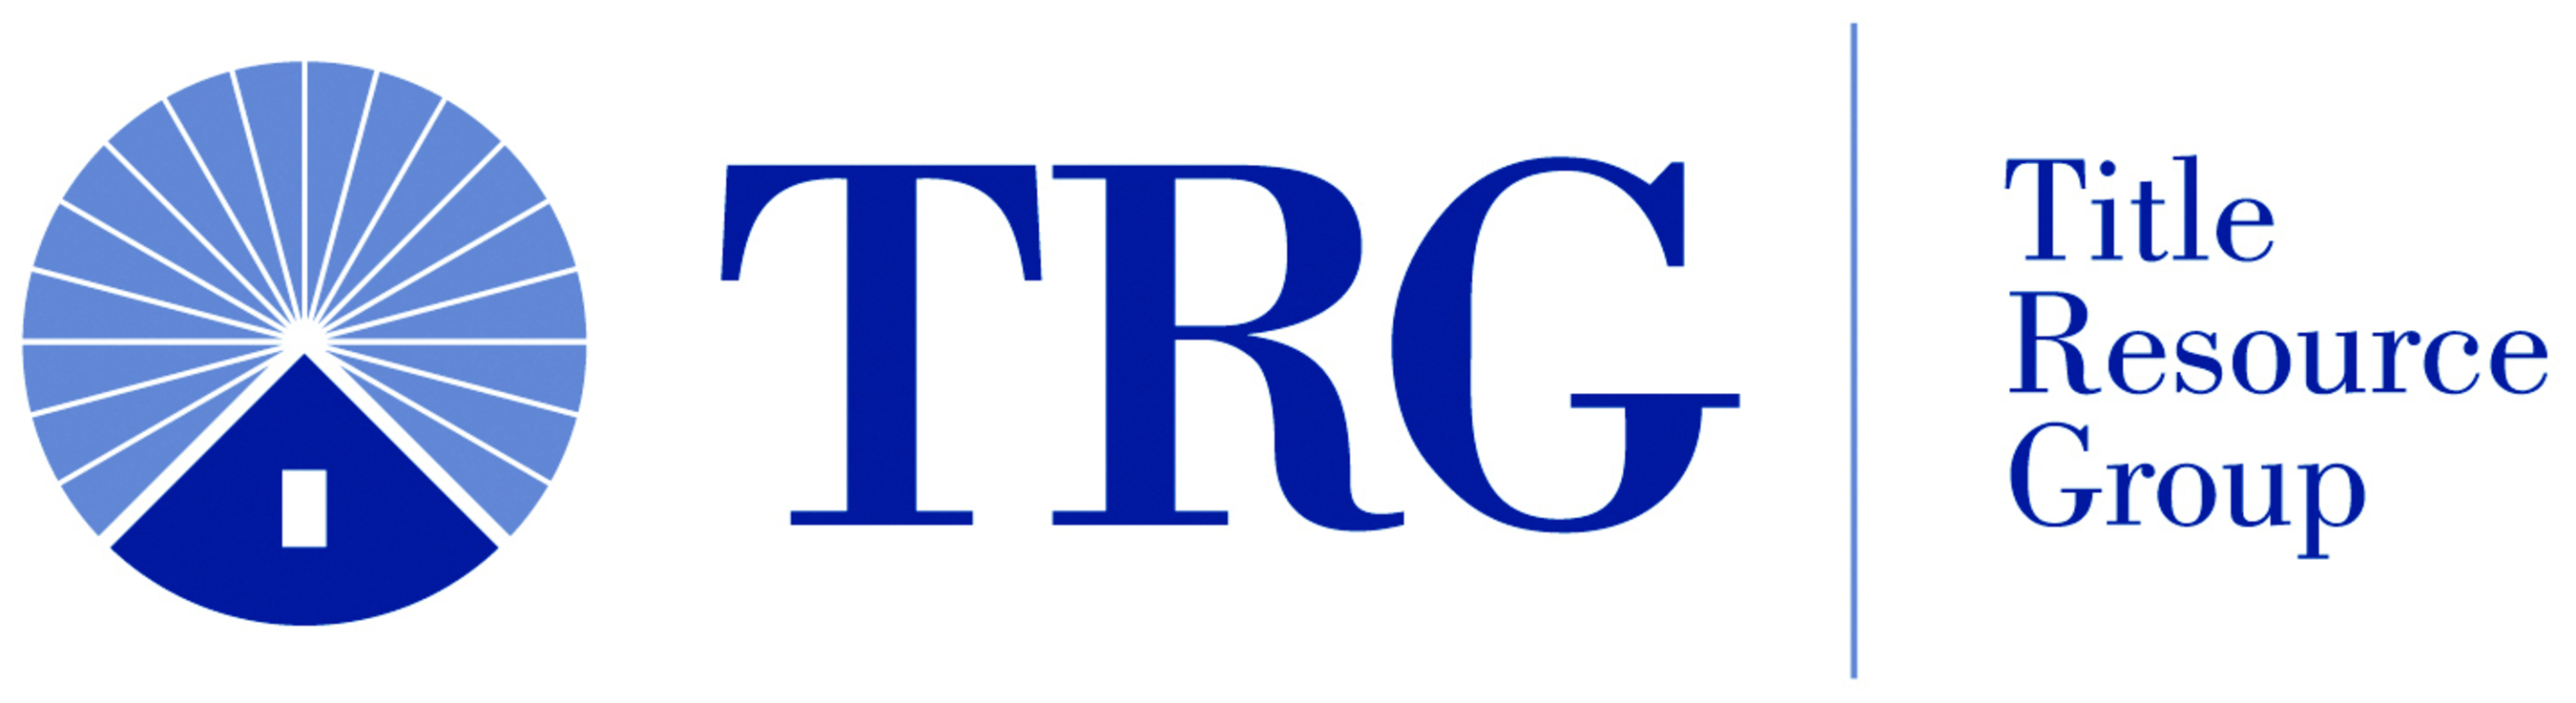 Title Resource Group logo. (PRNewsFoto/Title Resource Group)